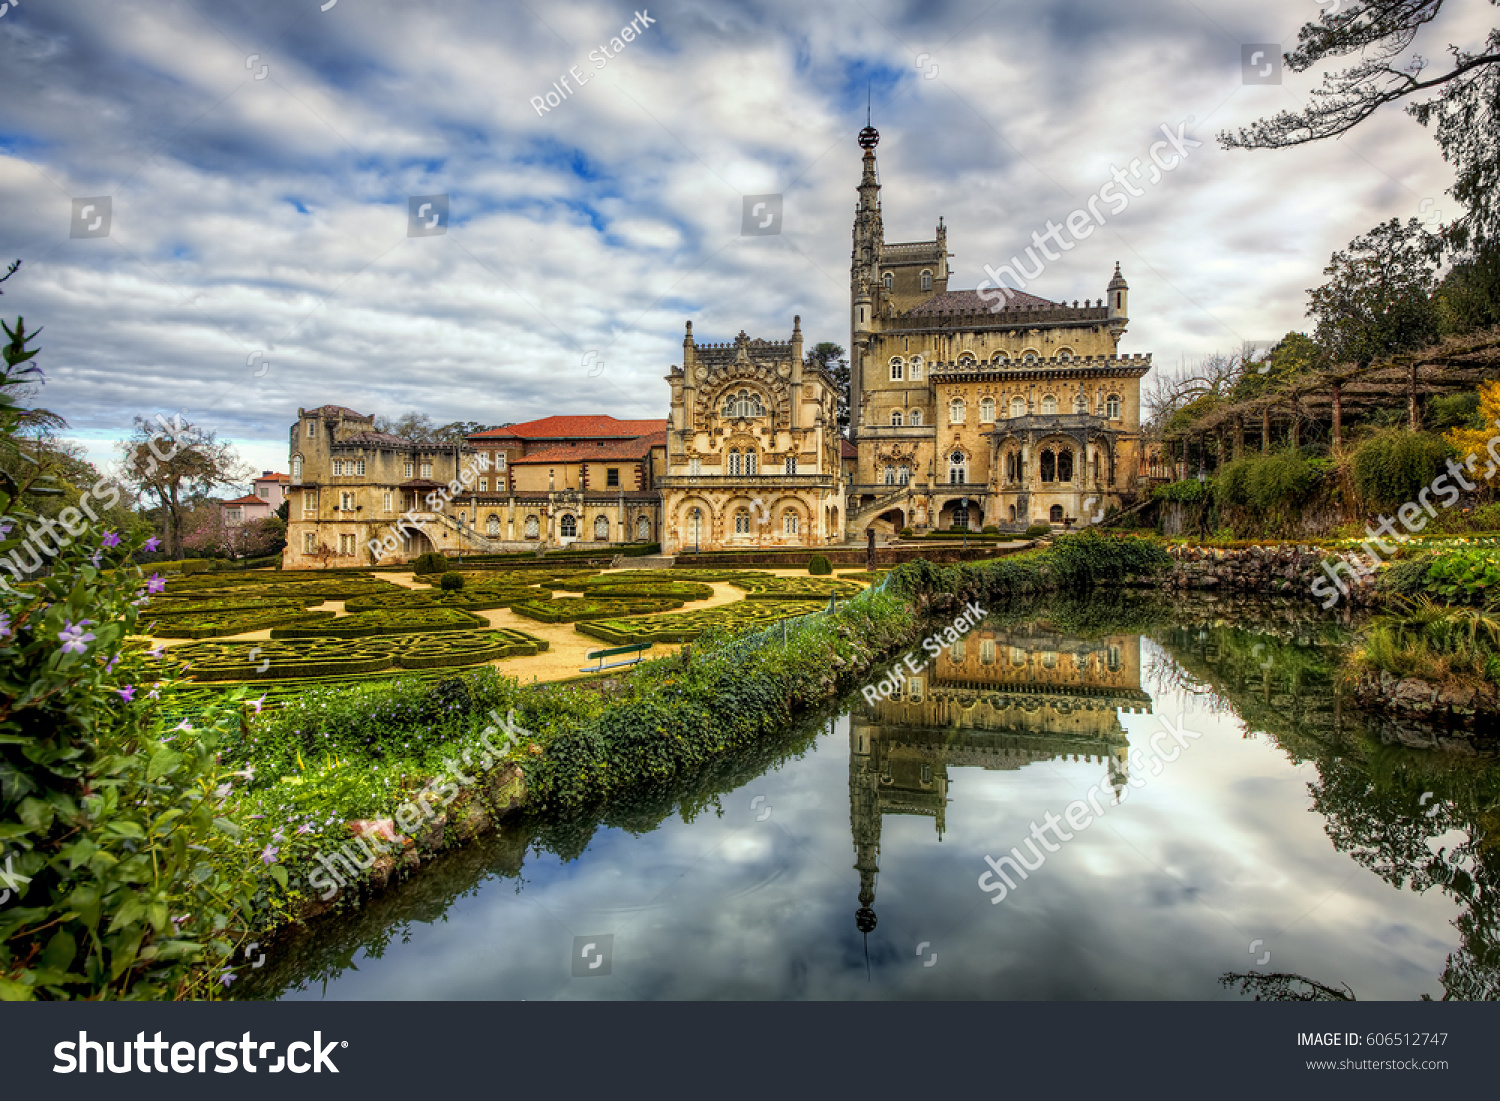 Gardens of the Buçaco Palace, Serra do Buçaco, Mealhada, Portugal #606512747